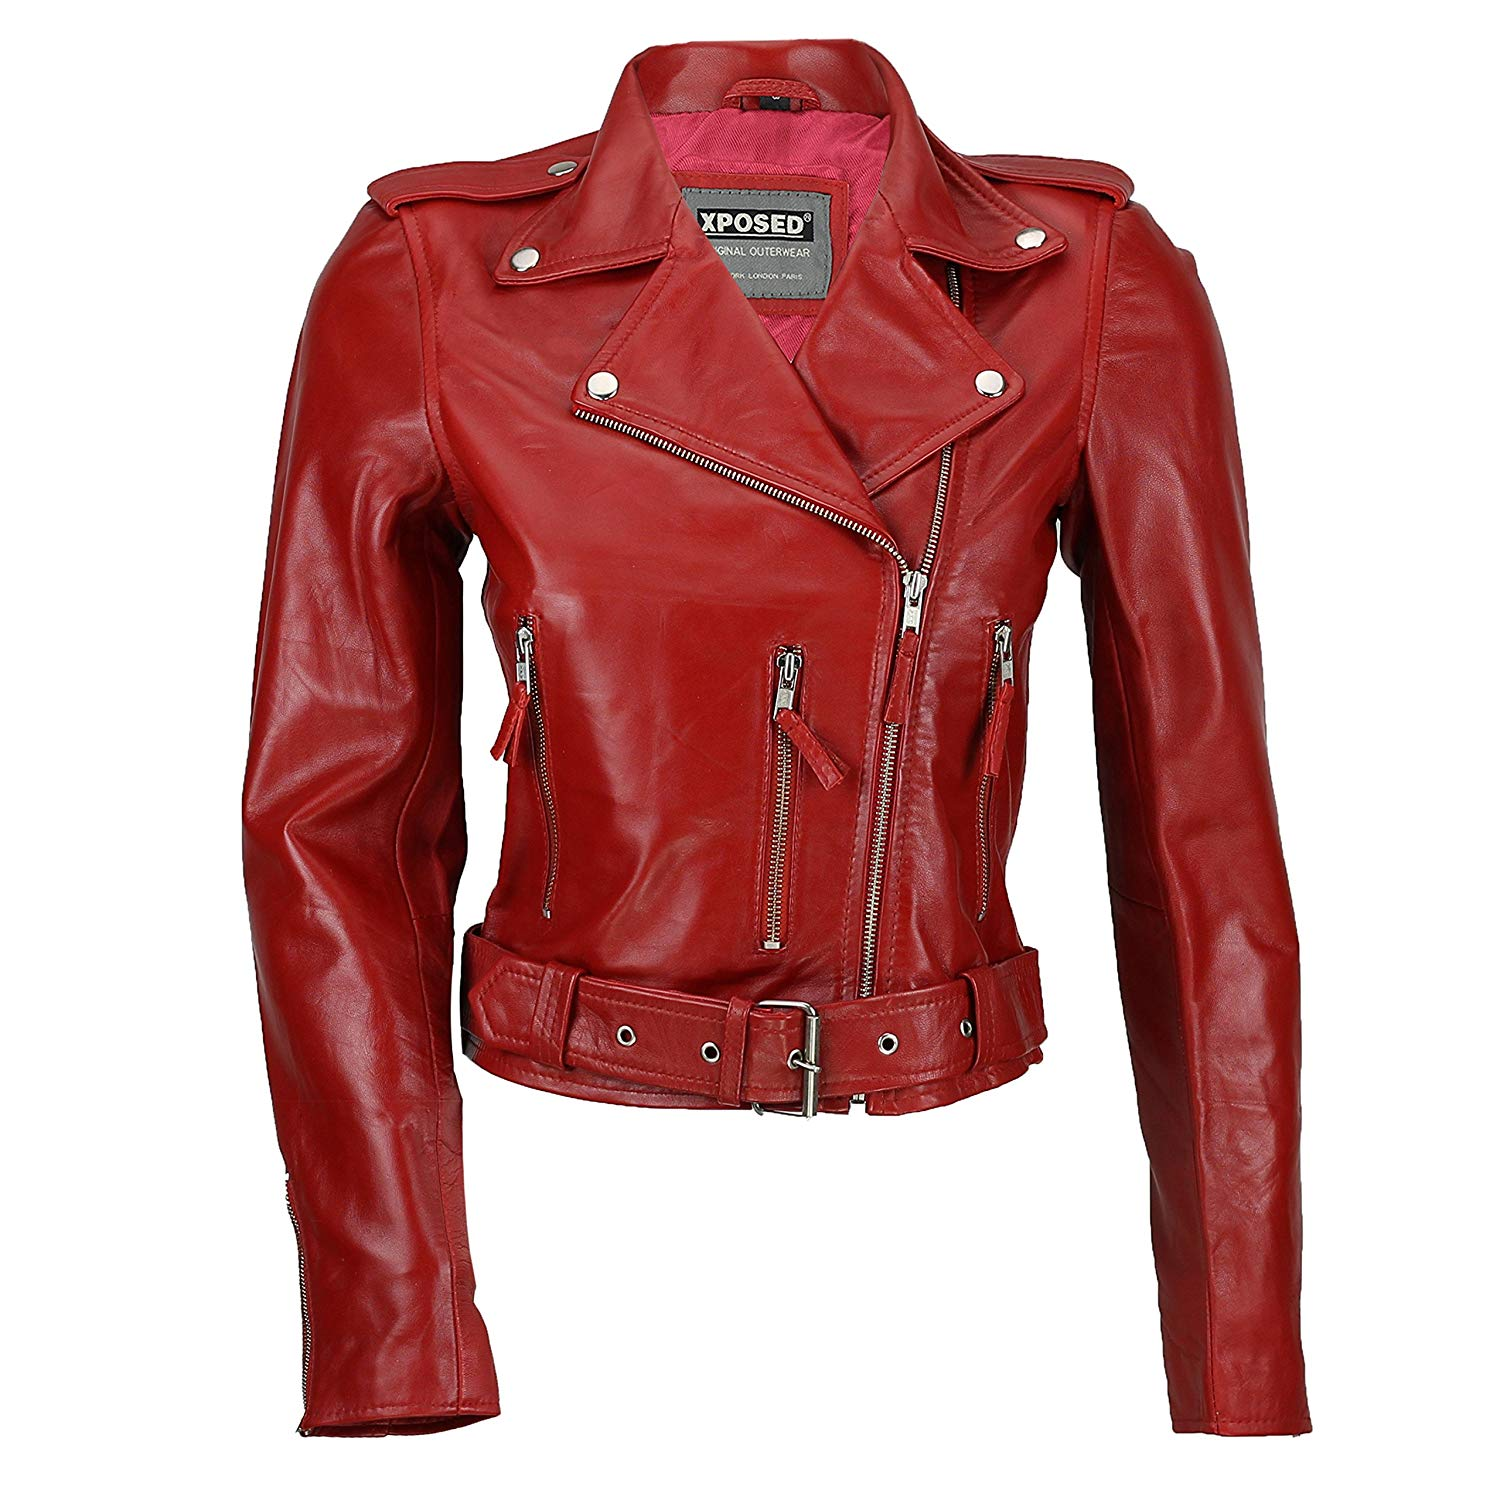 XPOSED Ladies Womens 100% Real Soft Leather Fitted Short Retro Rock Biker Jacket Black Red